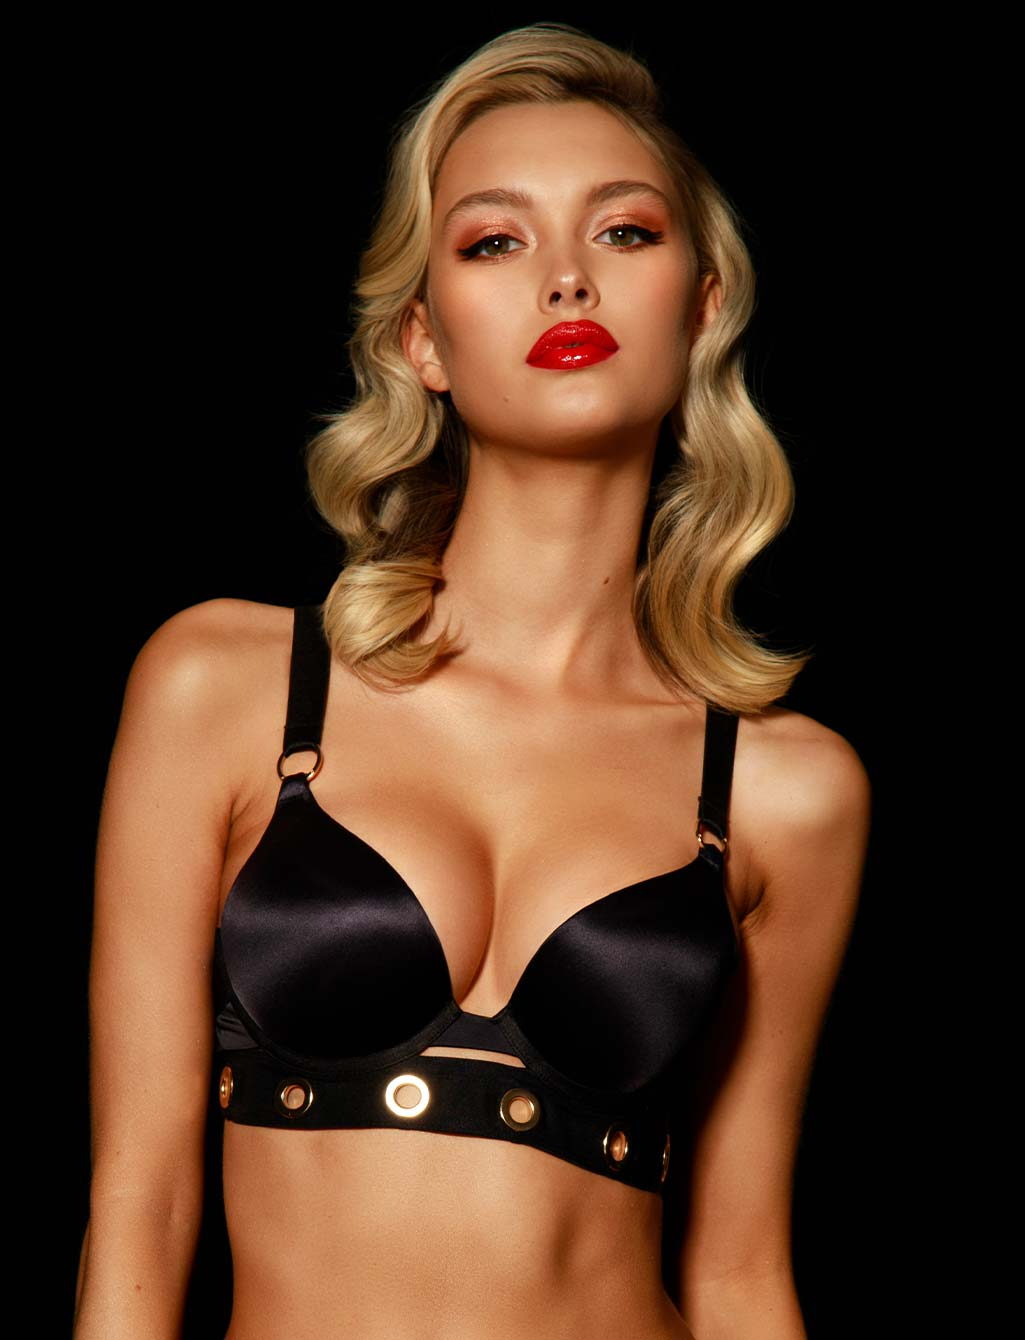 Ava Black Push Up Bra